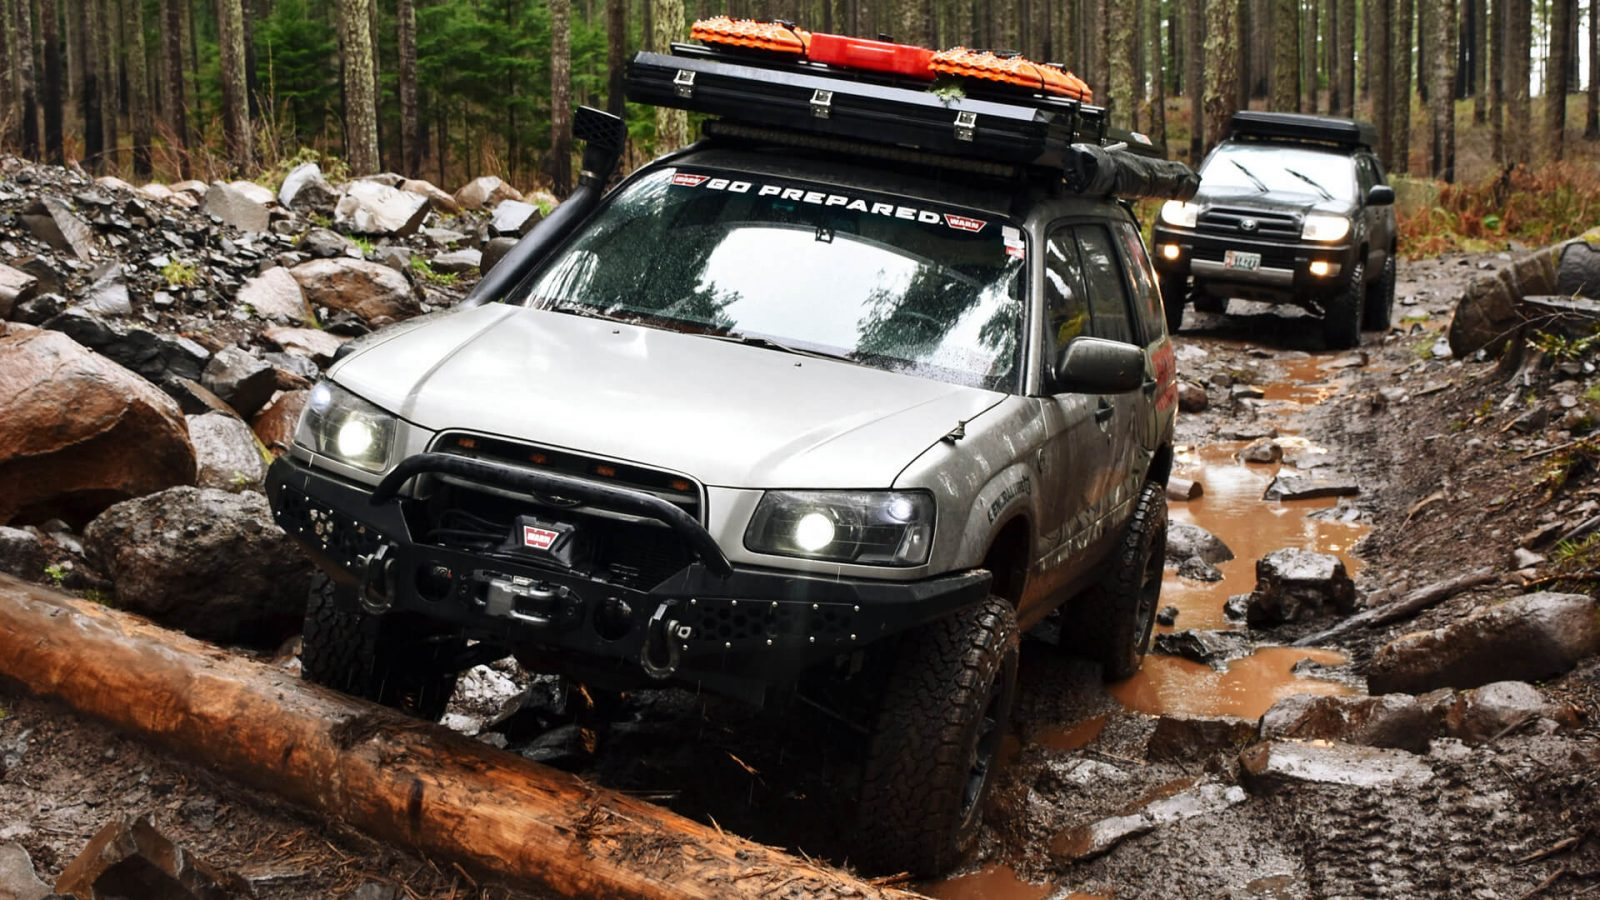 2005 Lifted Subaru Forester Off Road and Overland modifications